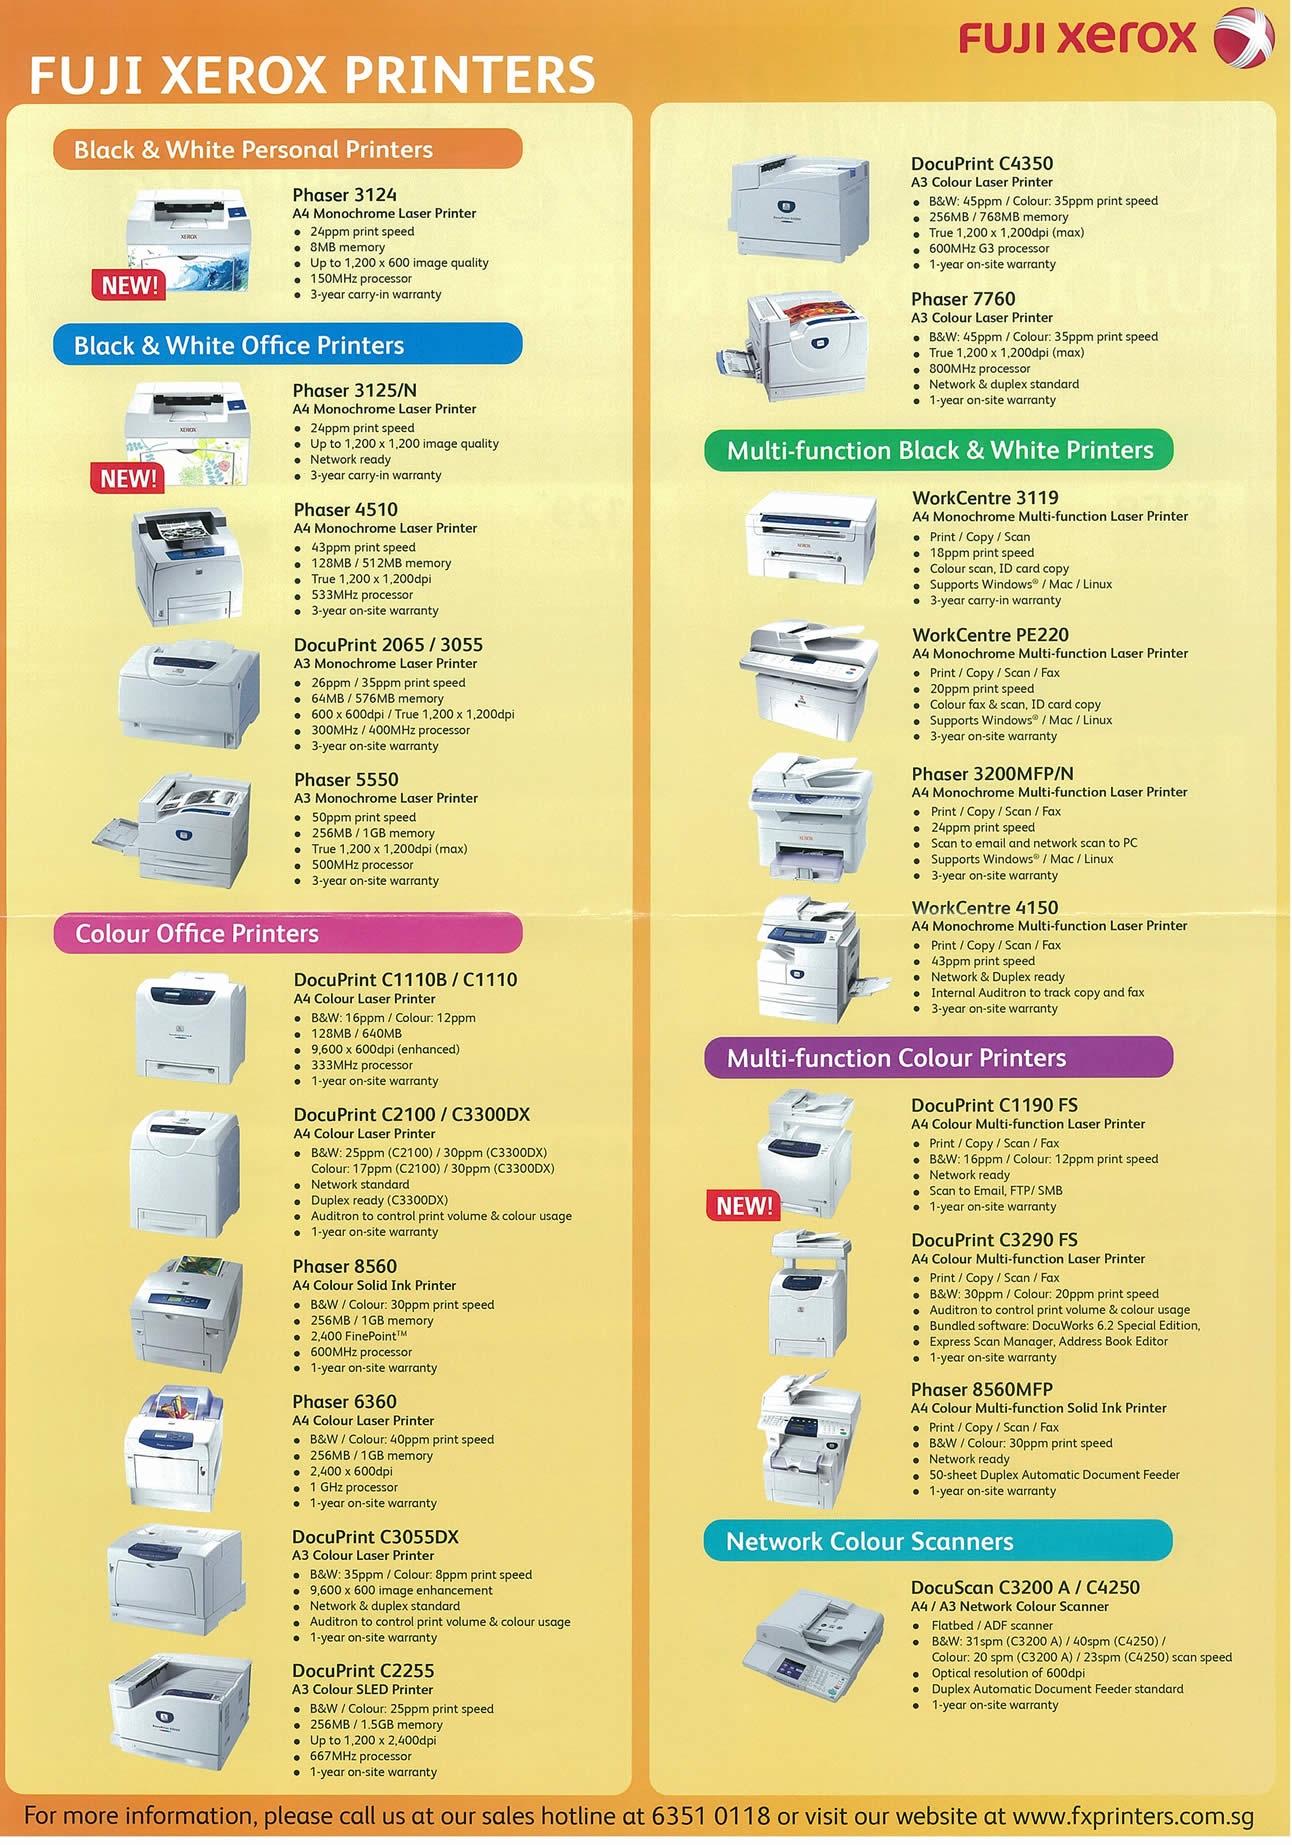 Fuji Xerox Printers Tclong IT SHOW 2009 Price List Brochure Flyer Image